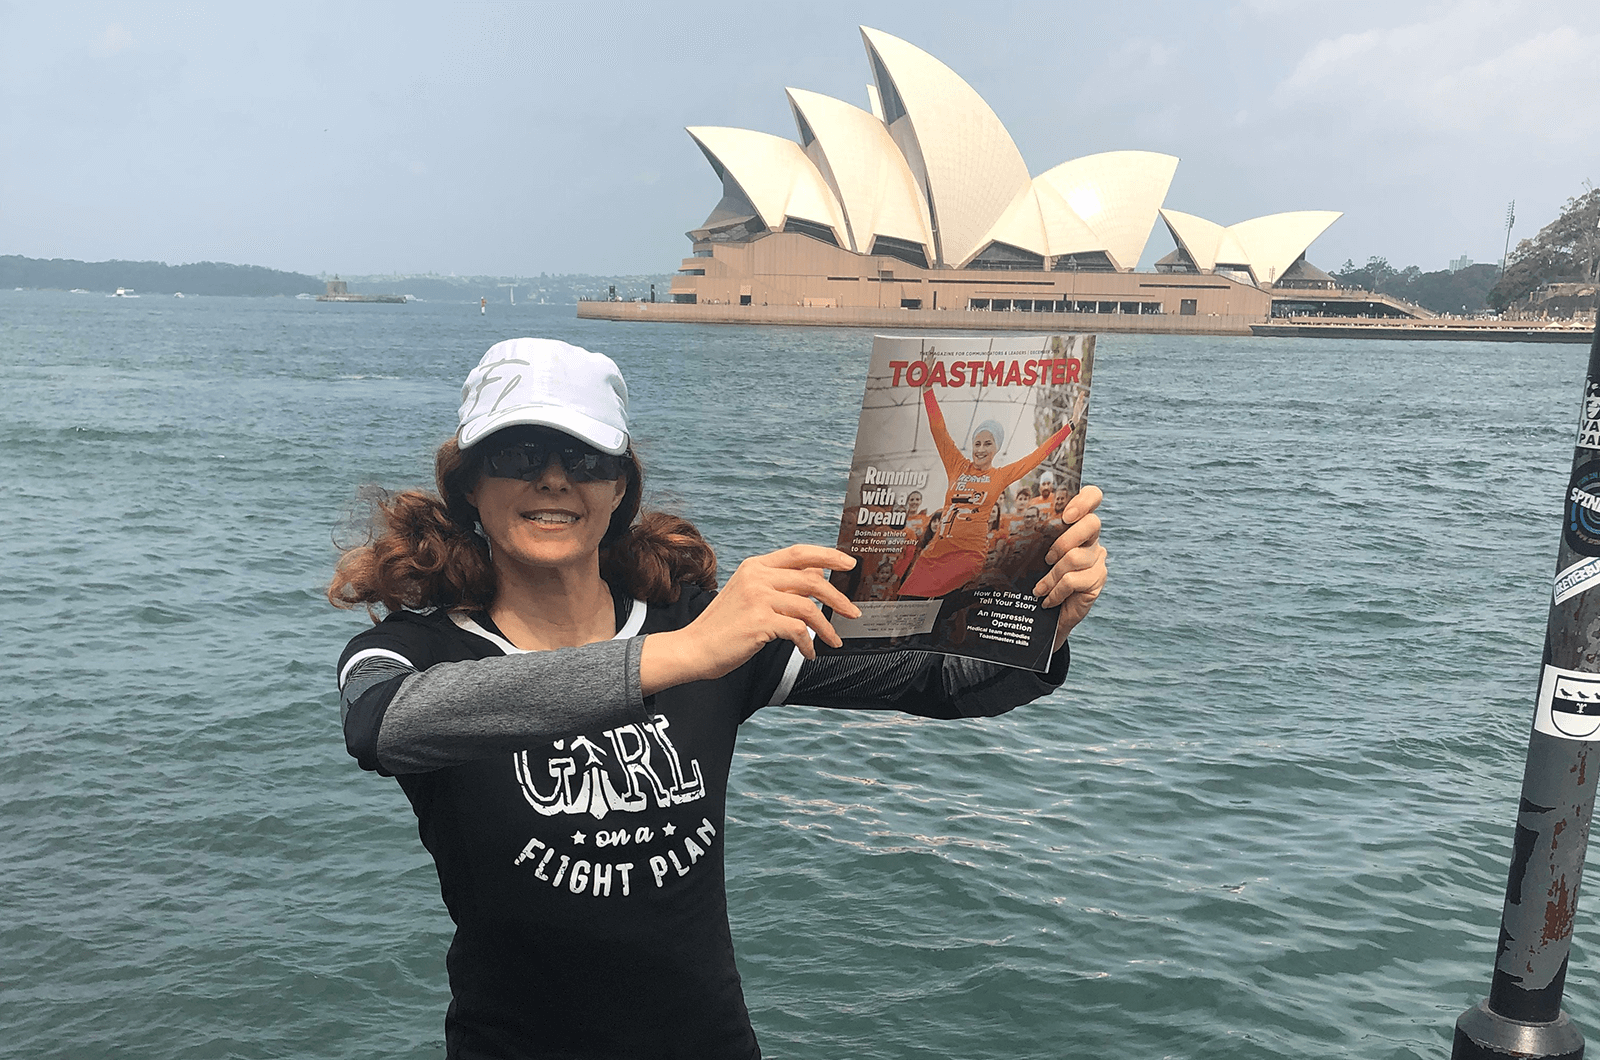 Louisa King of Fort Lauderdale, Florida, stands in front of the Sydney Opera House in Sydney, Australia.